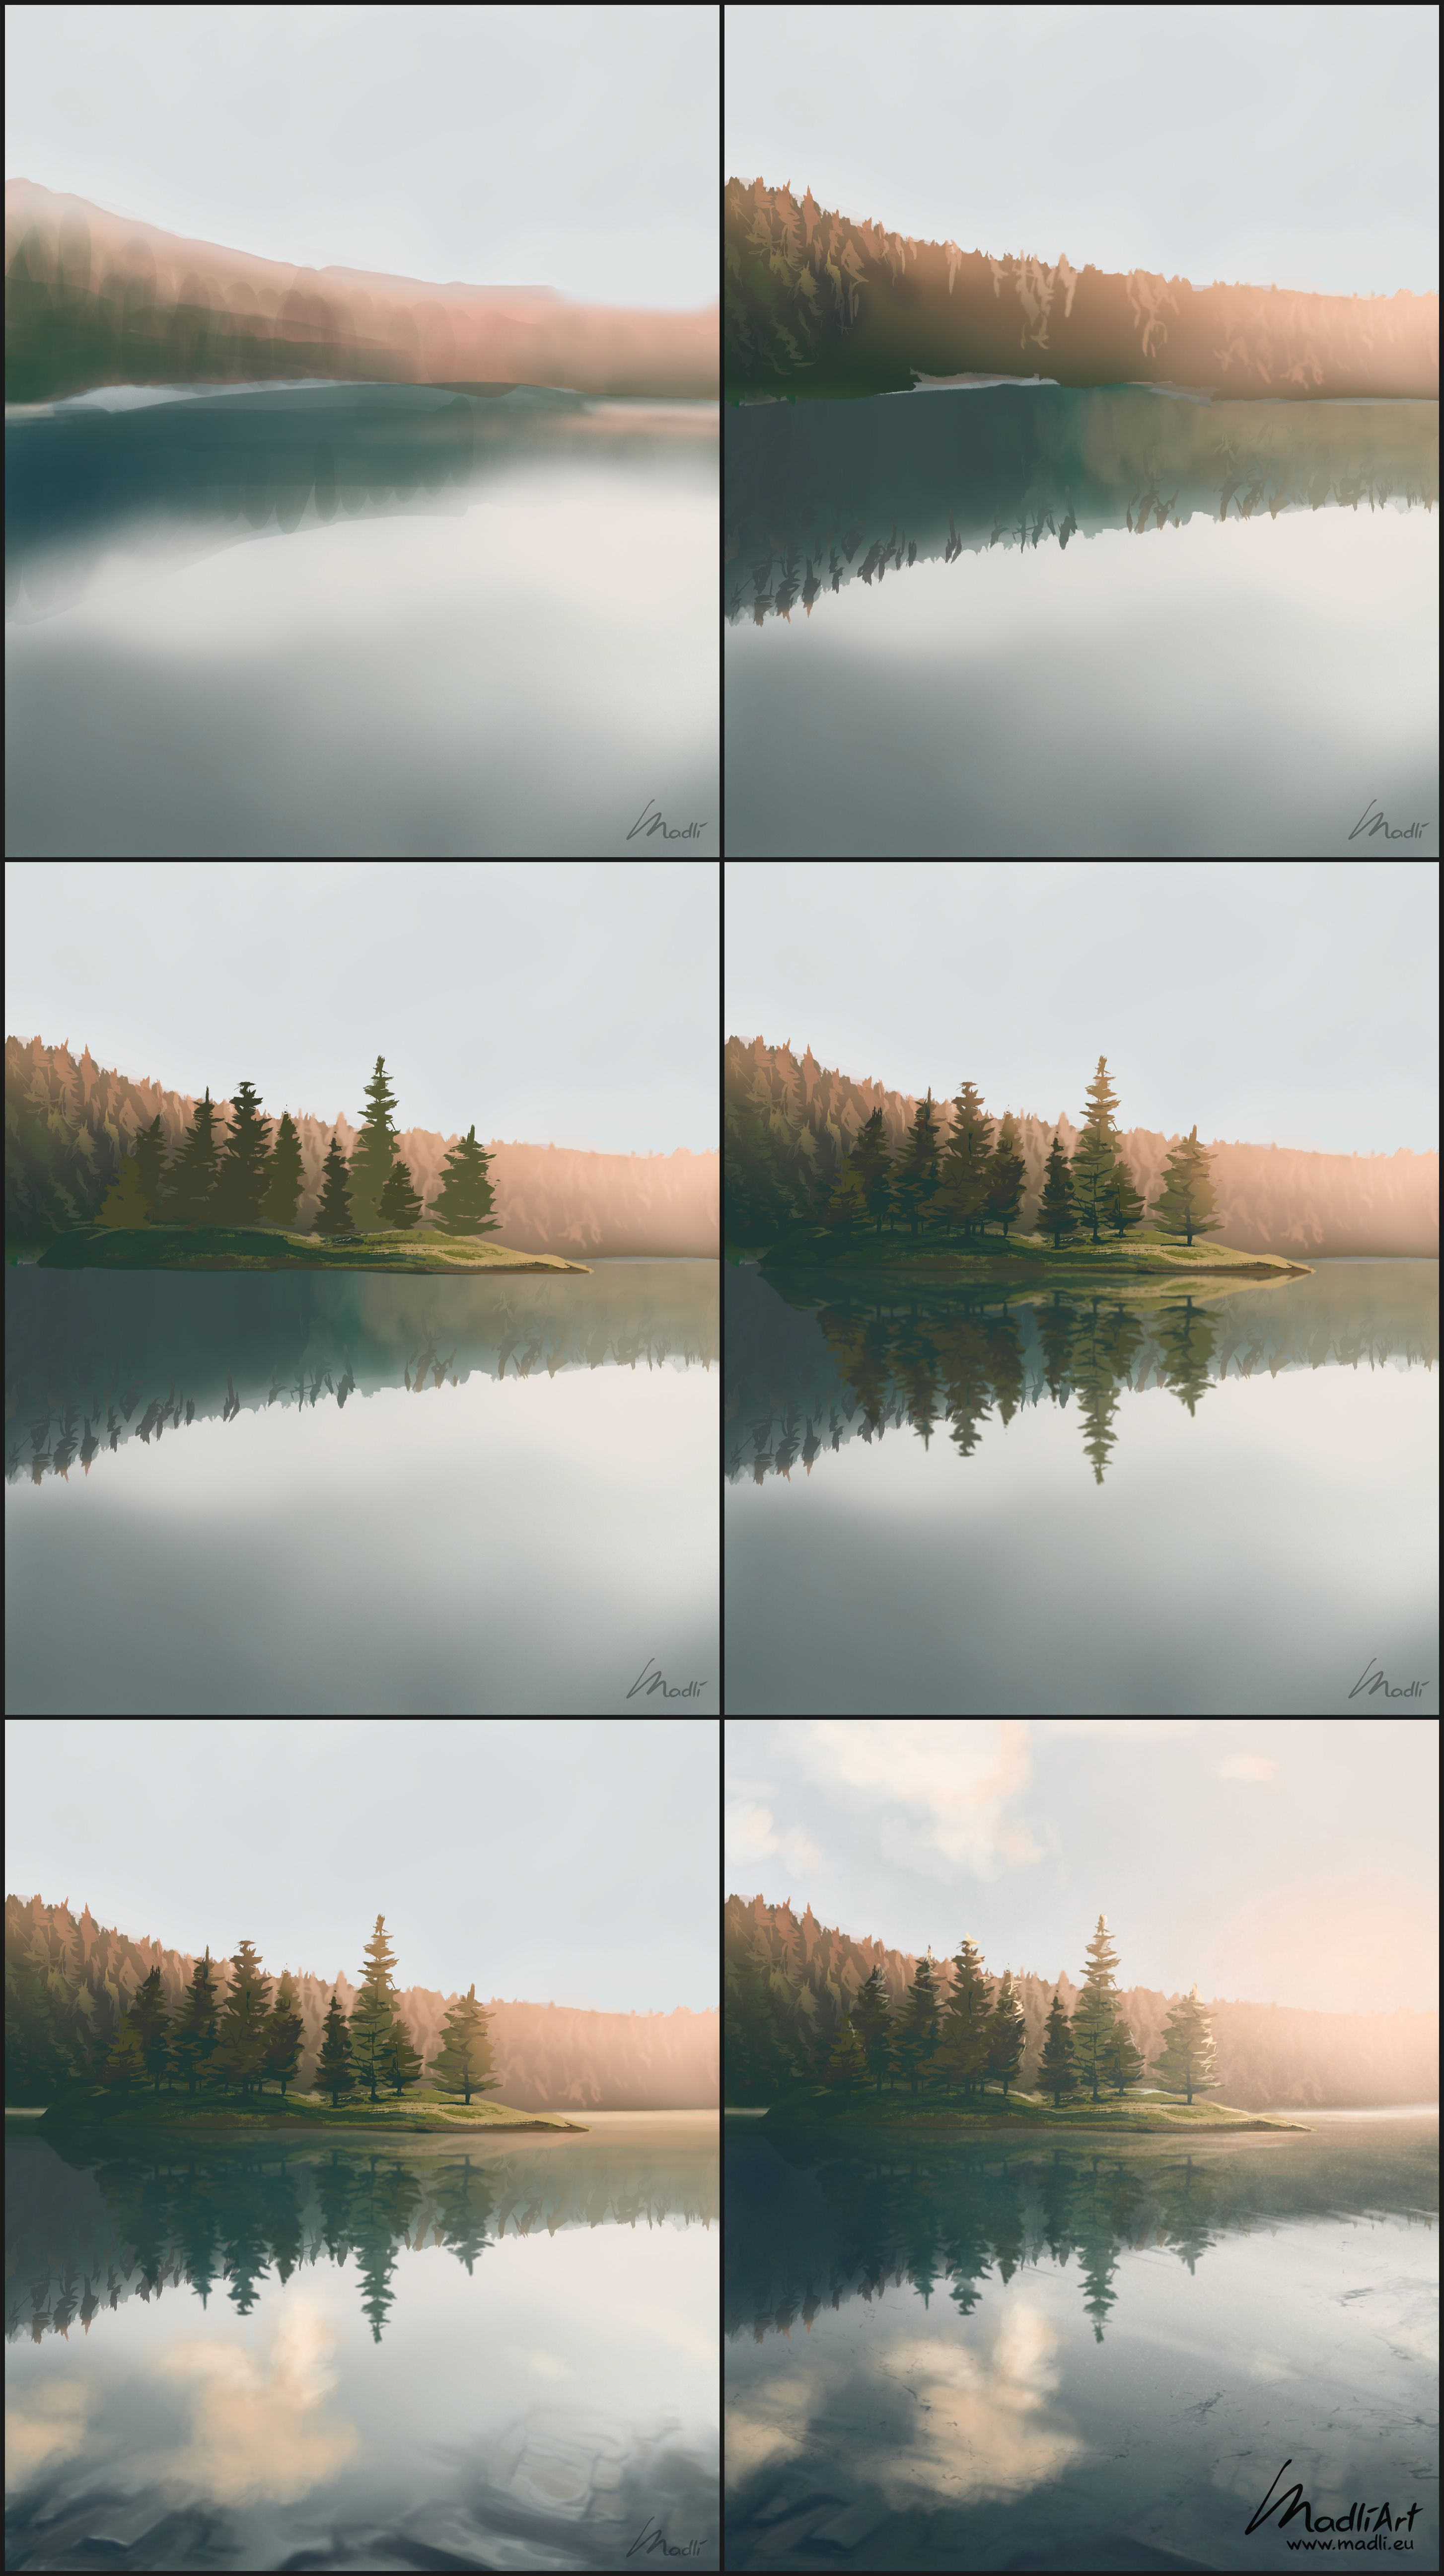 Digital Landscape Painting Step By Step Guide Digital Painting Techniques Digital Painting Landscape Paintings